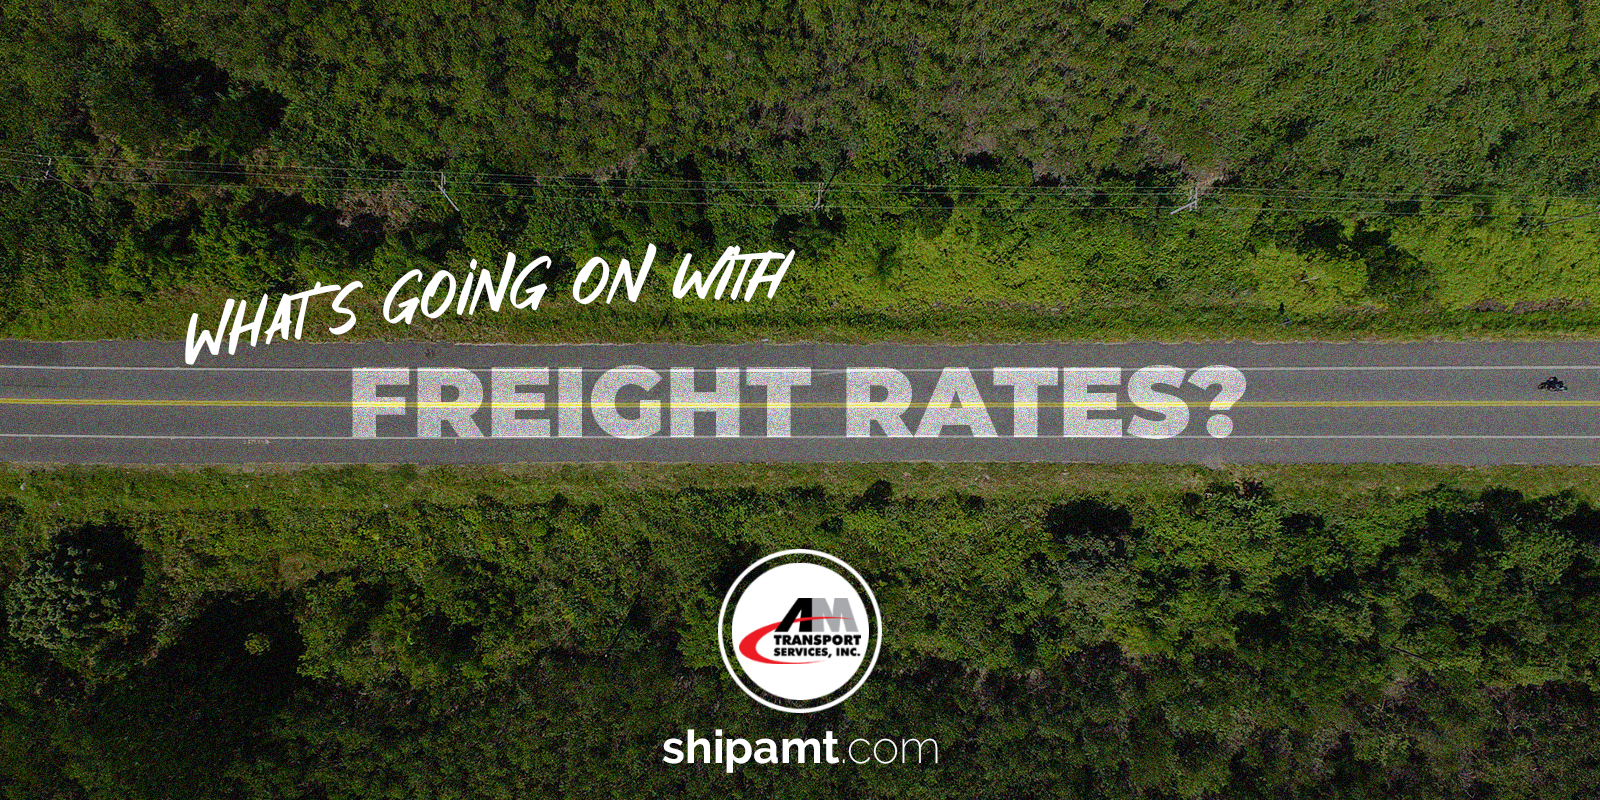 What's going on with high freight rates?